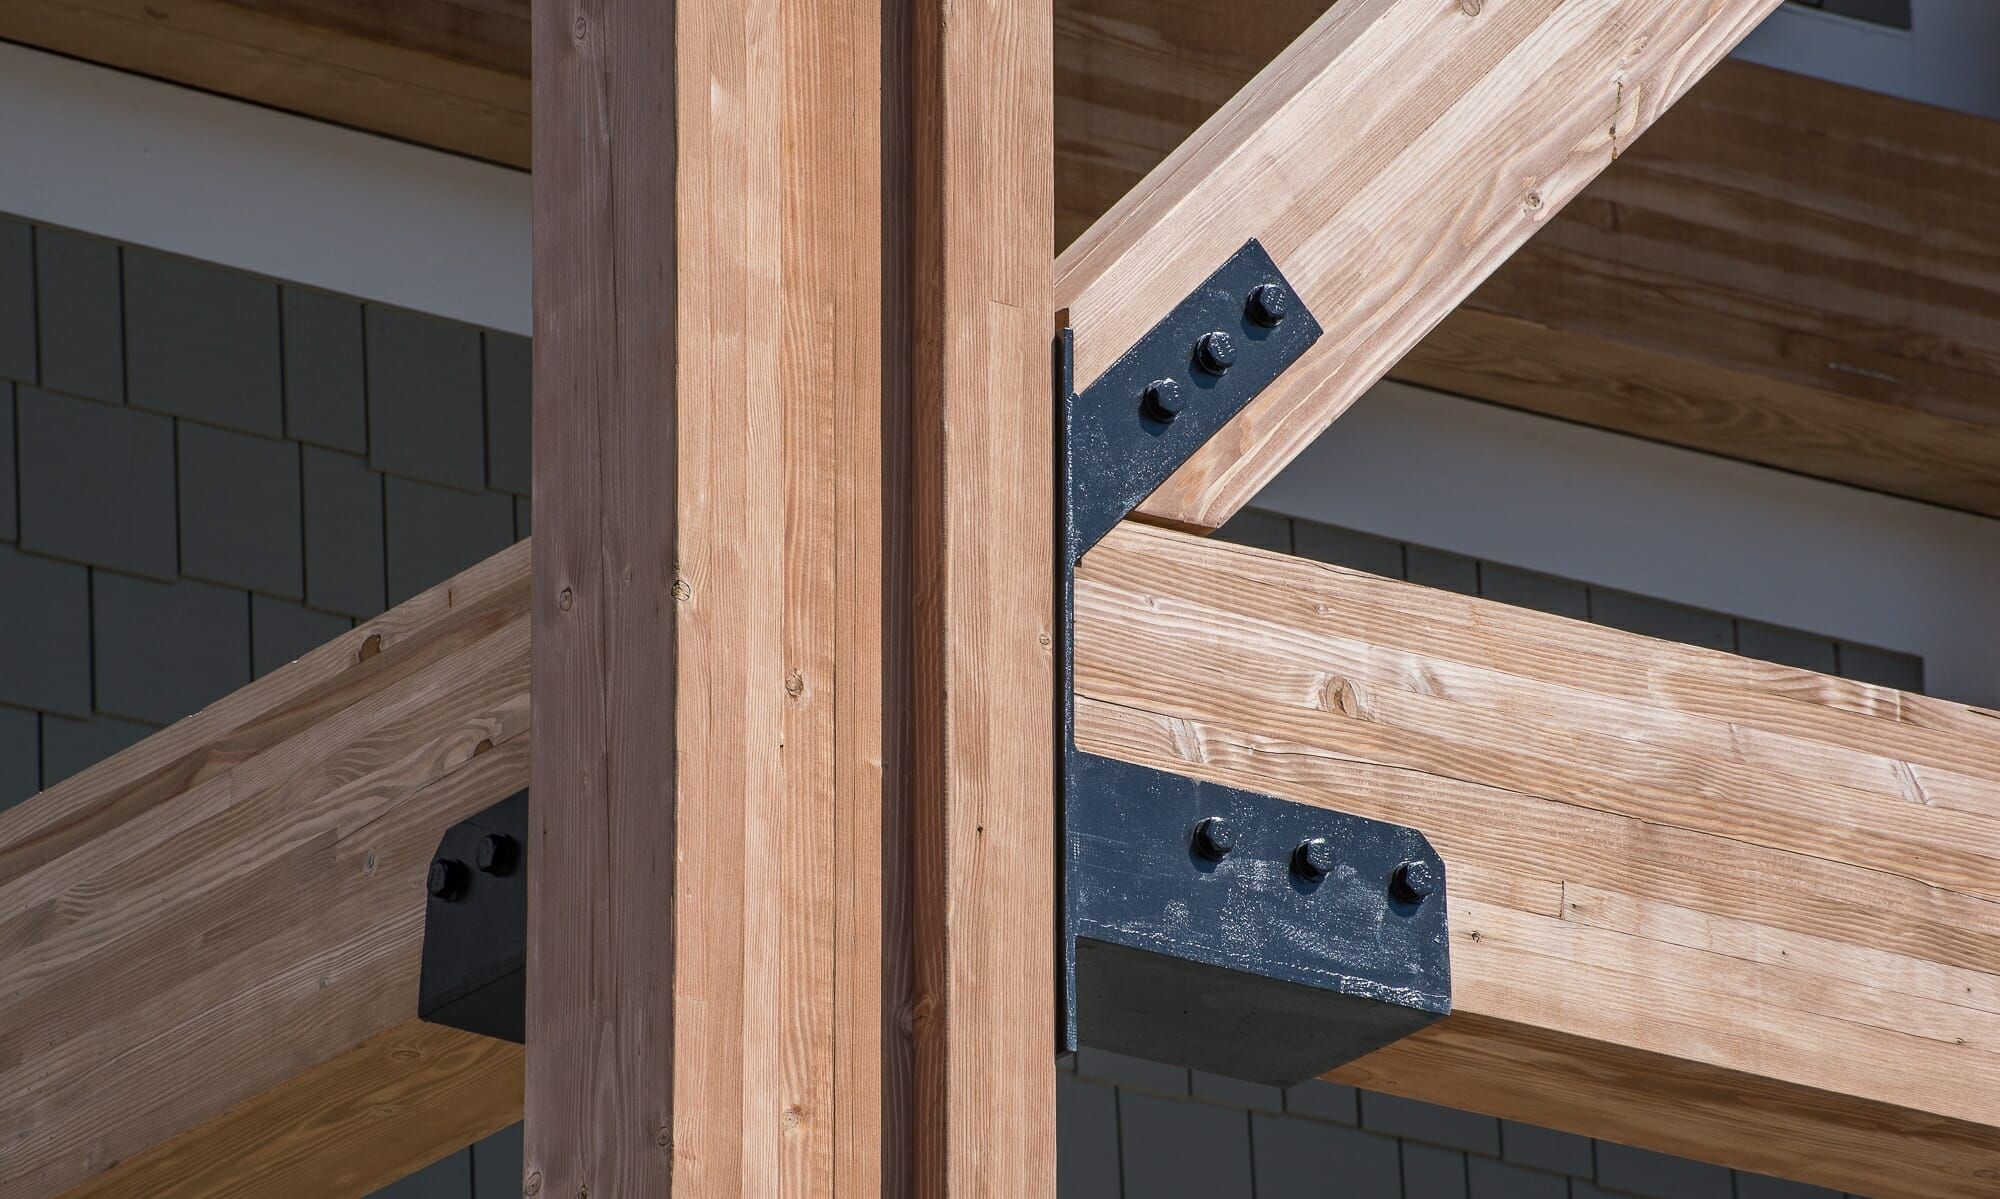 Steel Plate an Timber Joinery Details